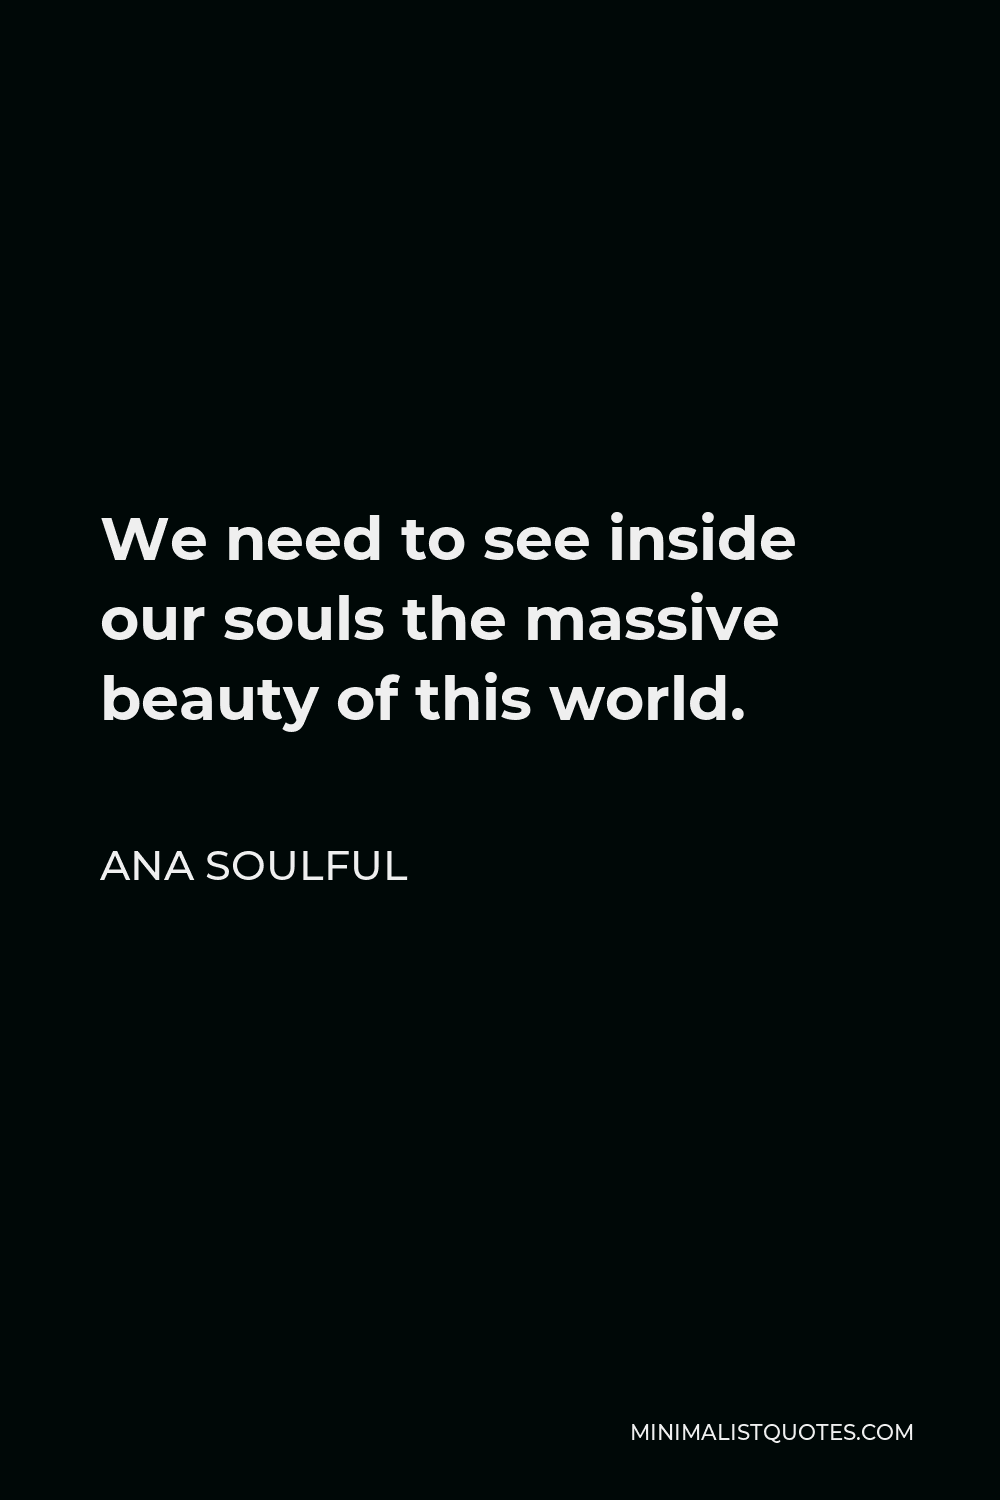 Ana Soulful Quote - We need to see inside our souls the massive beauty of this world.